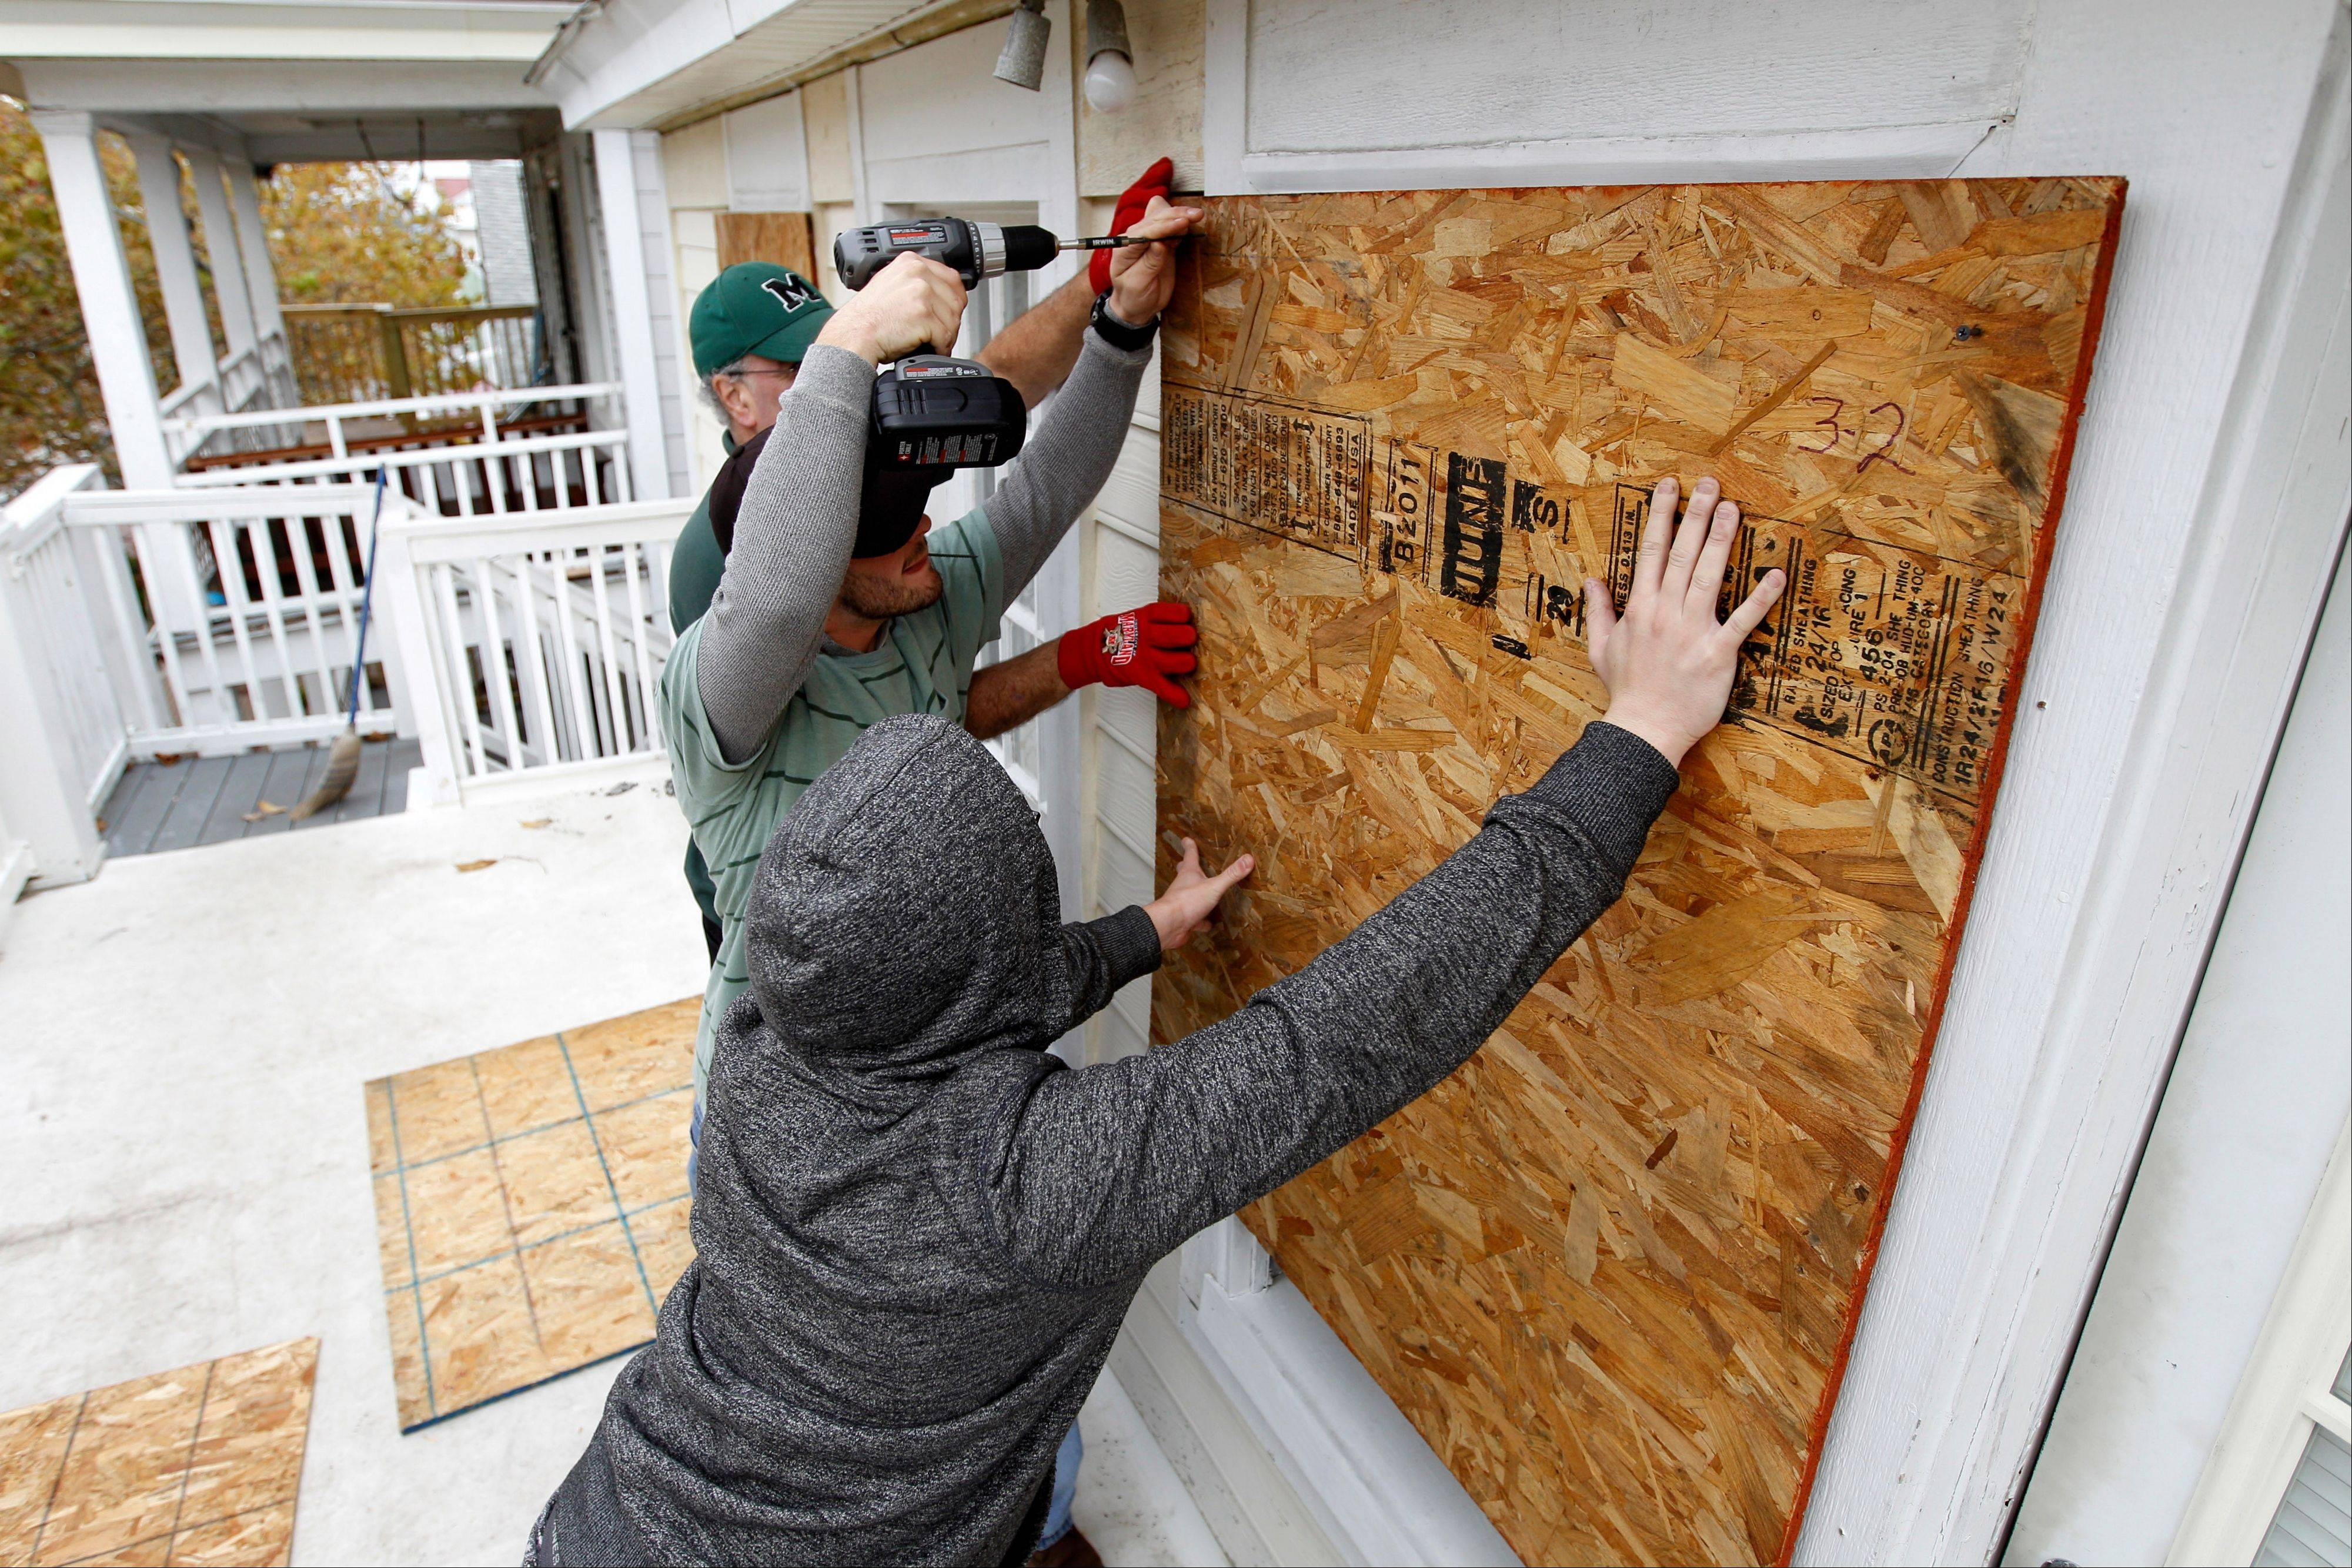 Scott Viviano, holding the drill, helps his friends to board up the windows of their home as Hurricane Sandy approaches the Atlantic Coast, in Ocean City, Md., on Saturday, Oct. 27, 2012.